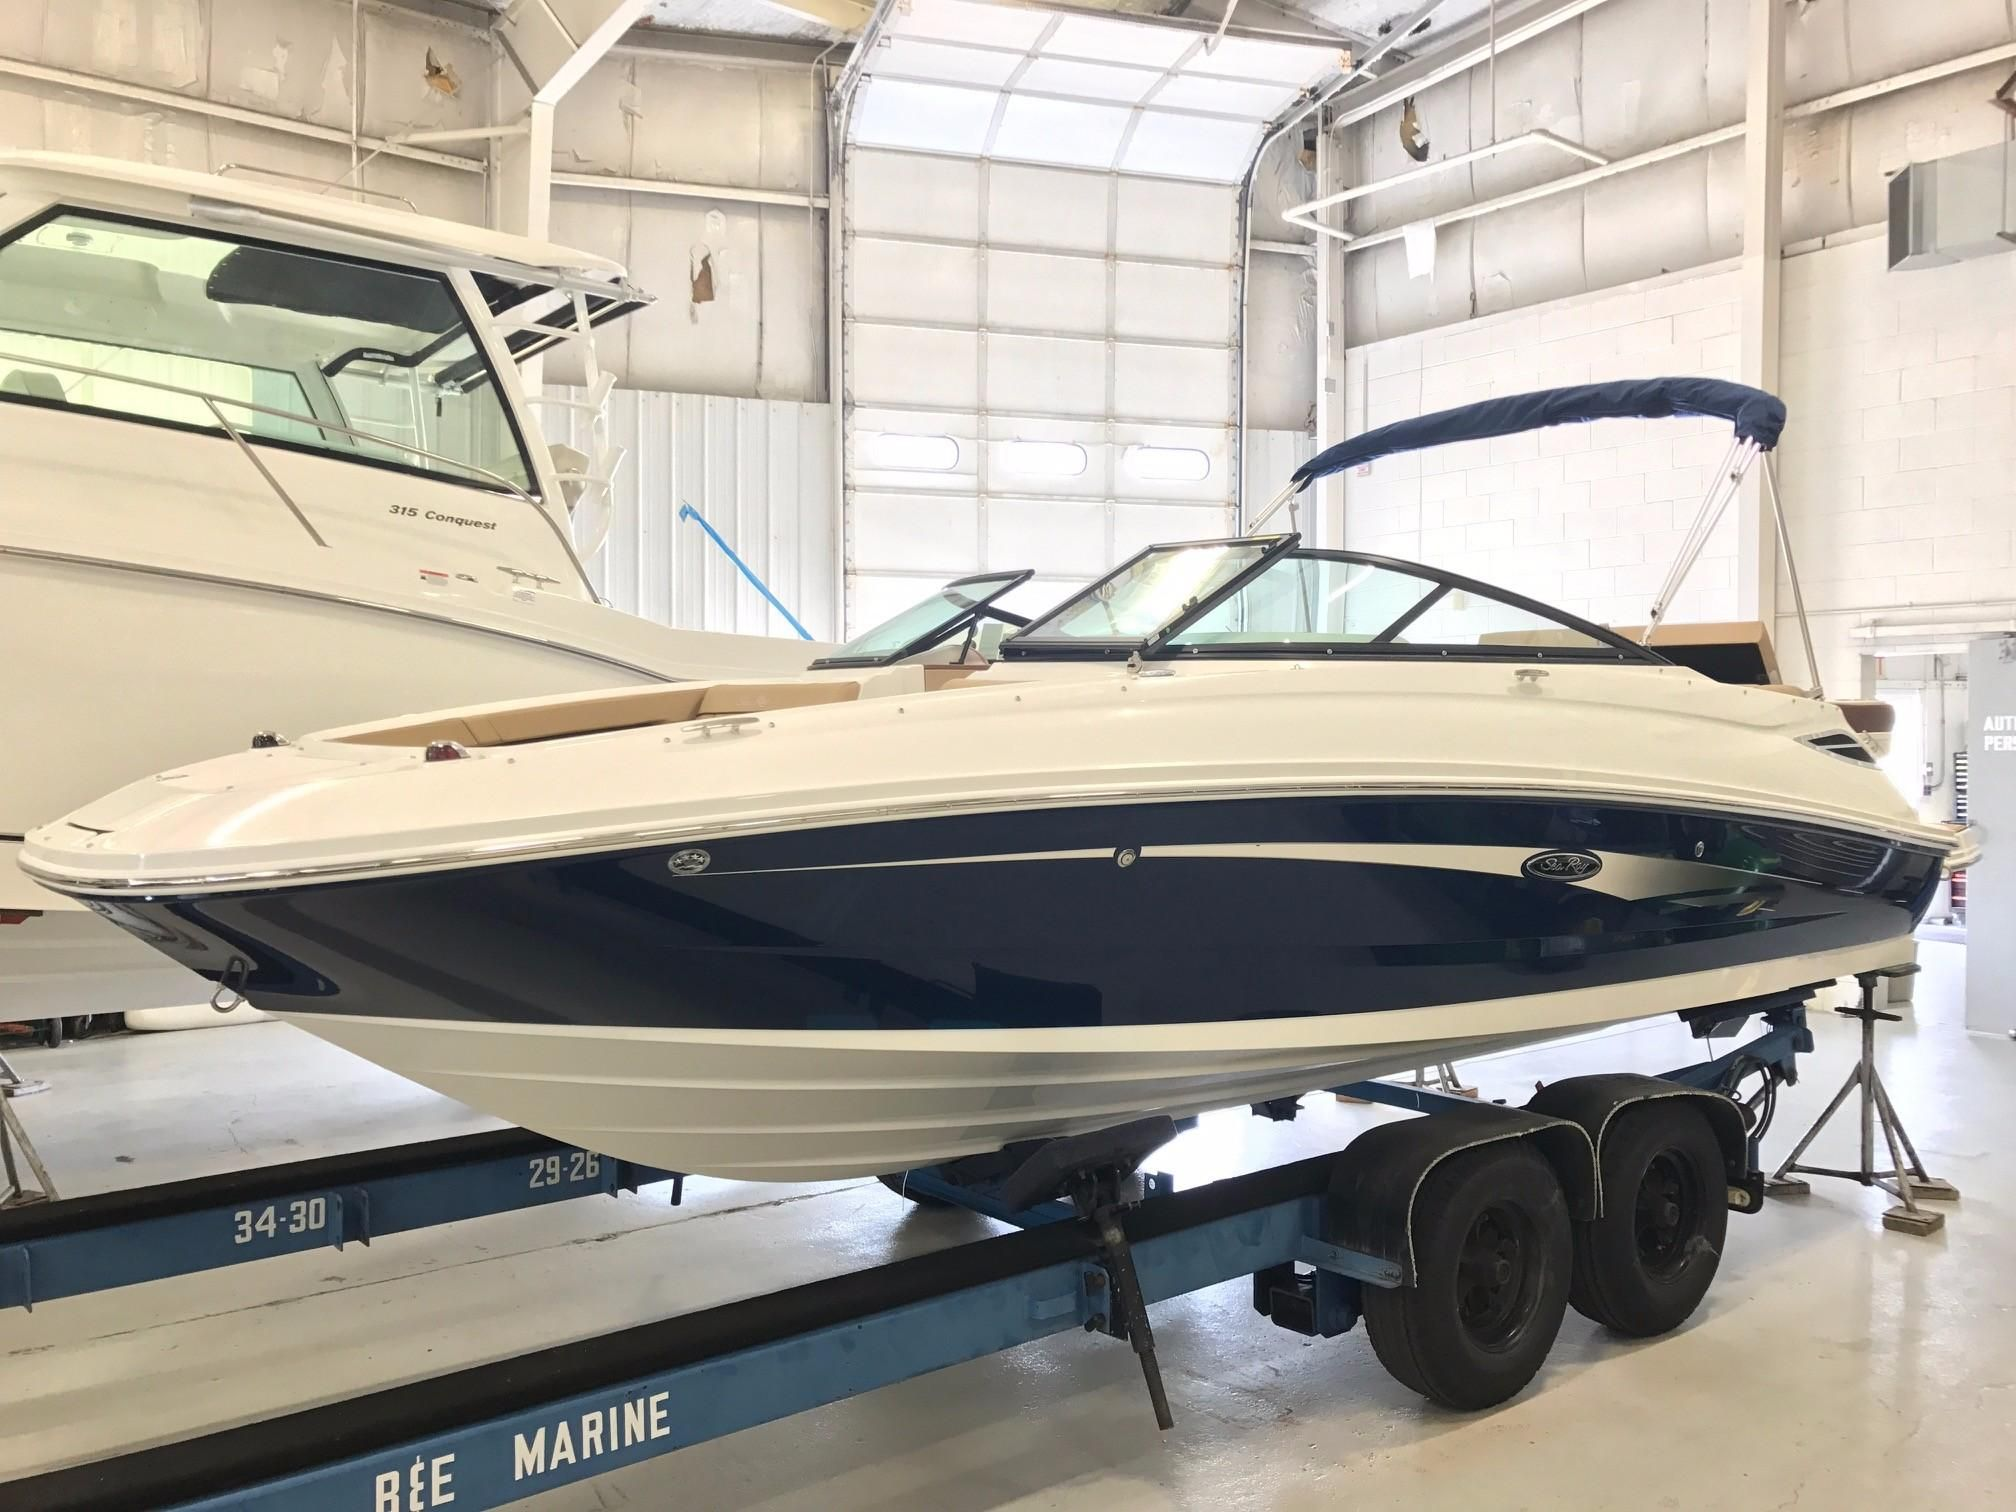 2017 sea ray 220 sundeck power boat for sale www for Sundeck flooring